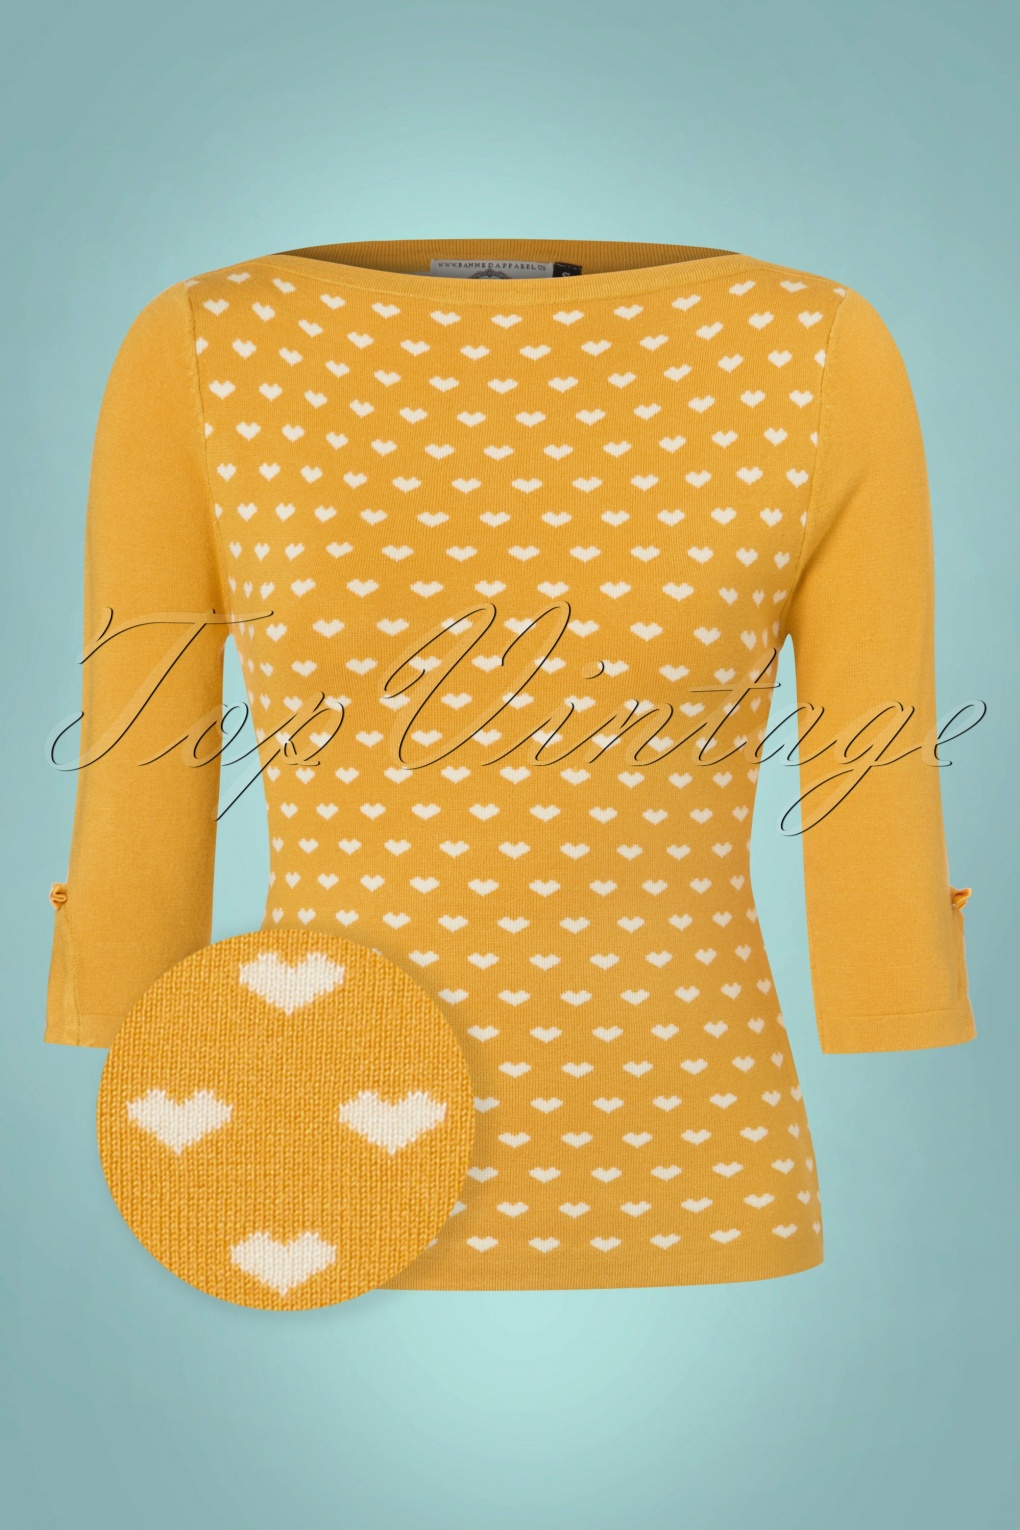 1960s Inspired Fashion: Recreate the Look 60s Charming Heart Knit Sweater in Mustard £35.06 AT vintagedancer.com